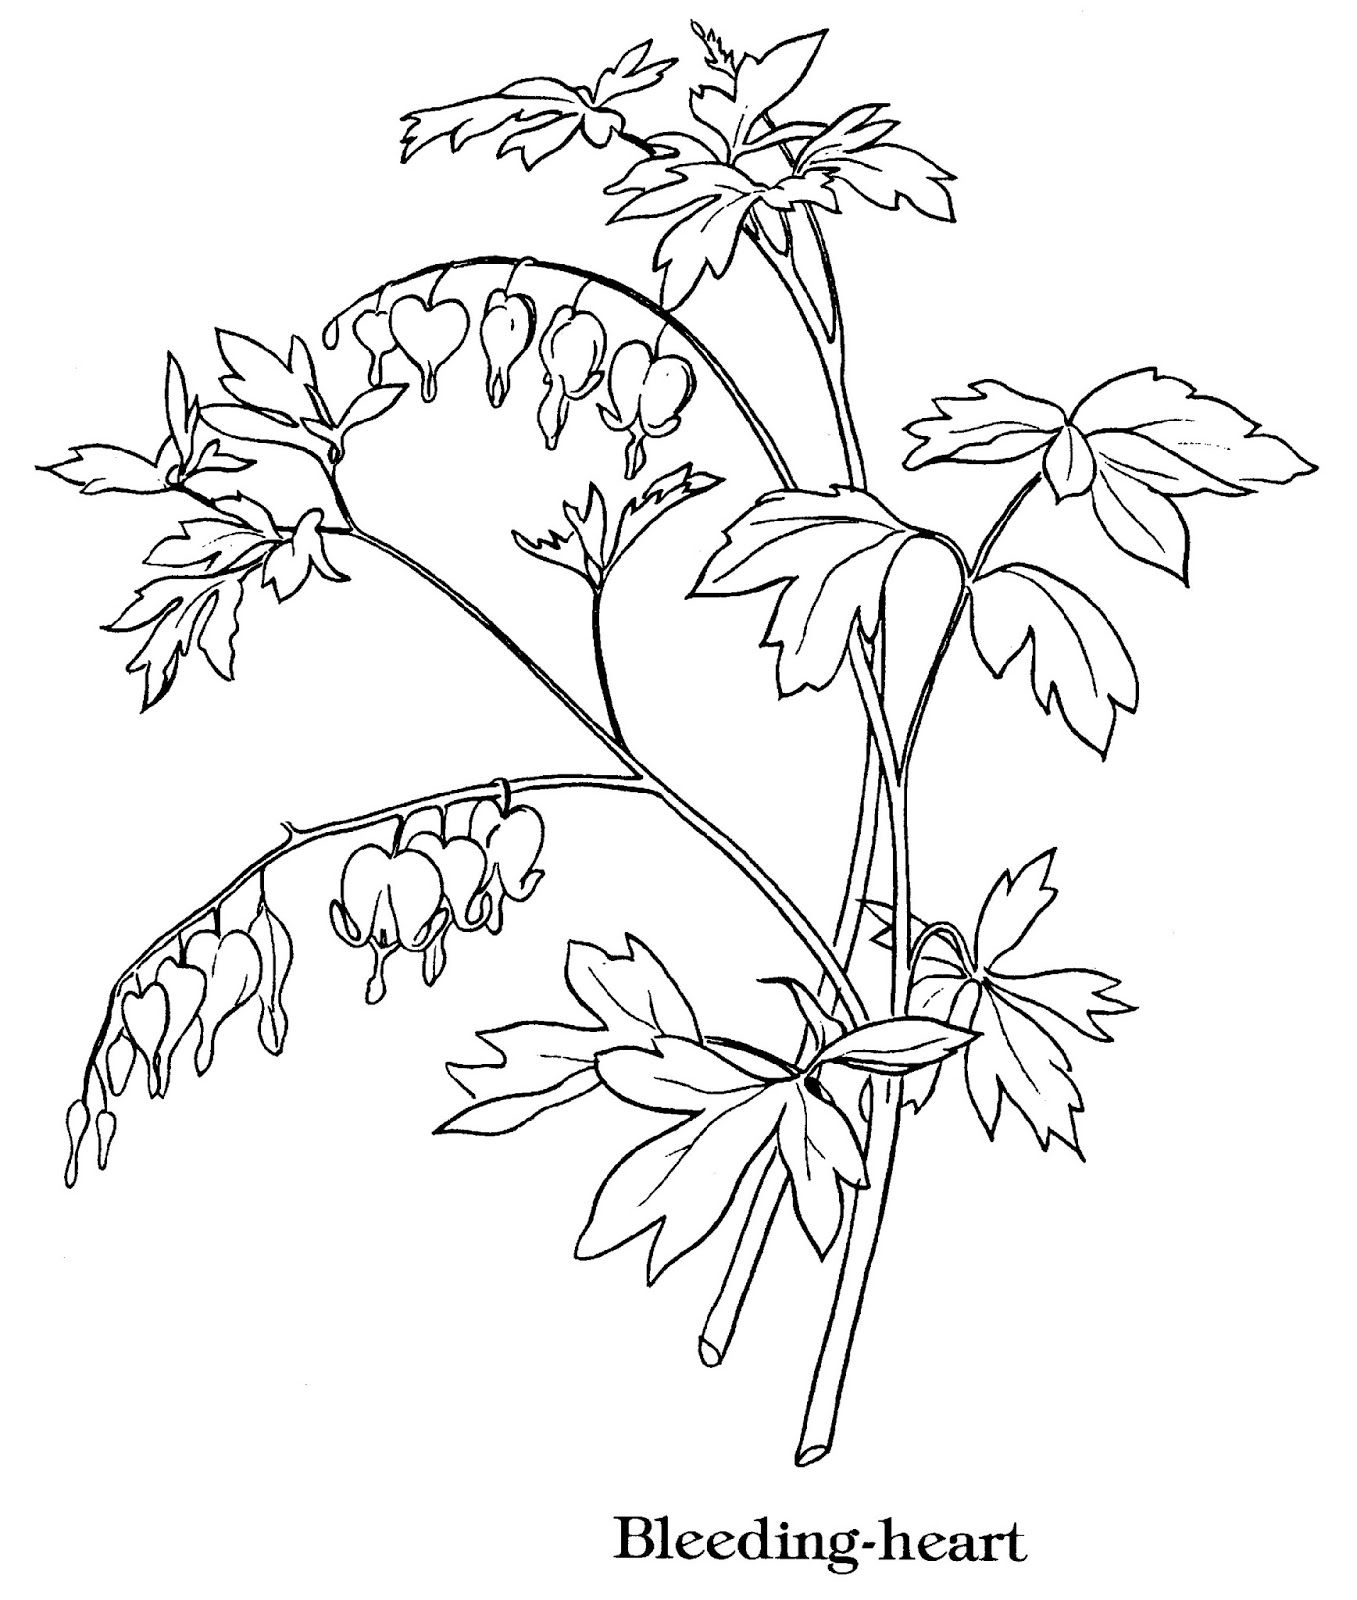 Pancho and Lefty (With images) Heart coloring pages